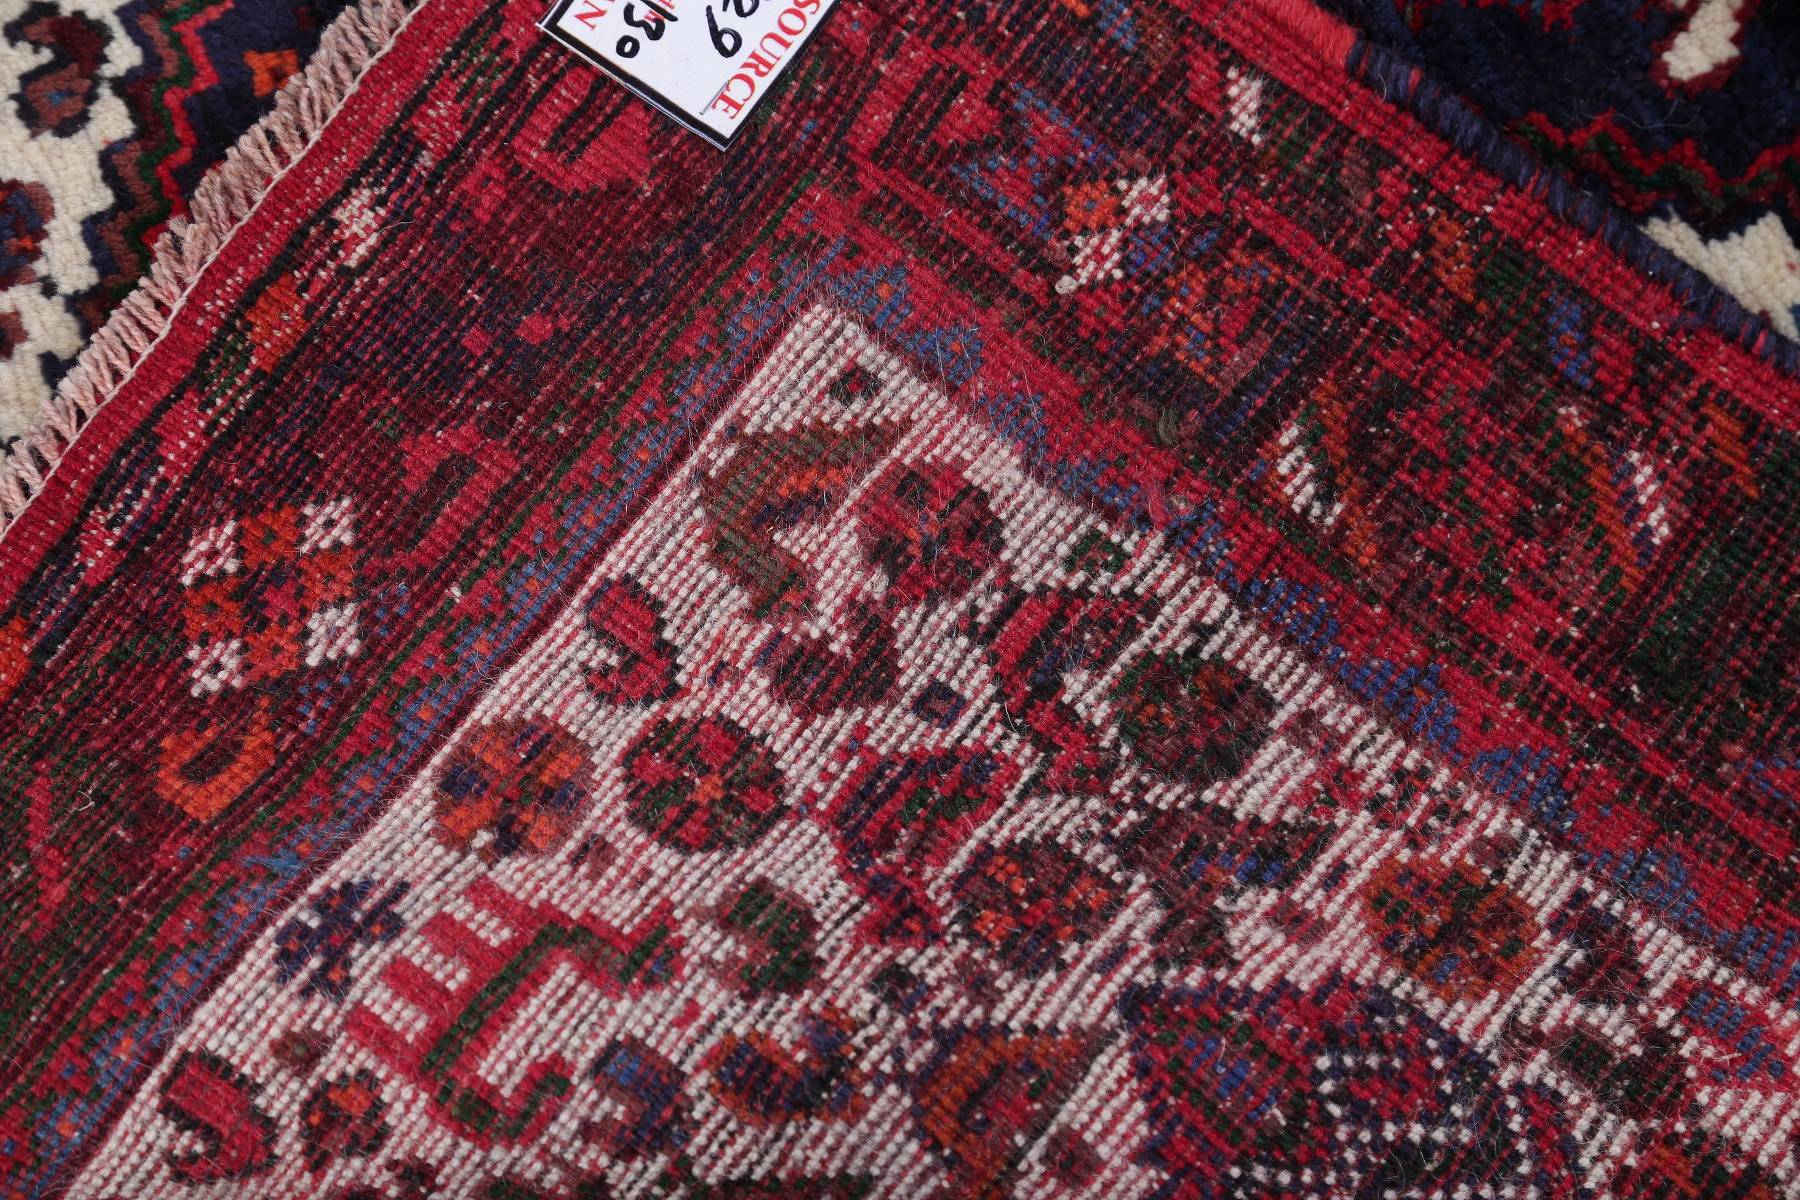 One-of-a-Kind Tribal Geometric Abadeh Persian Hand-Knotted 4x6 Wool Area Rug